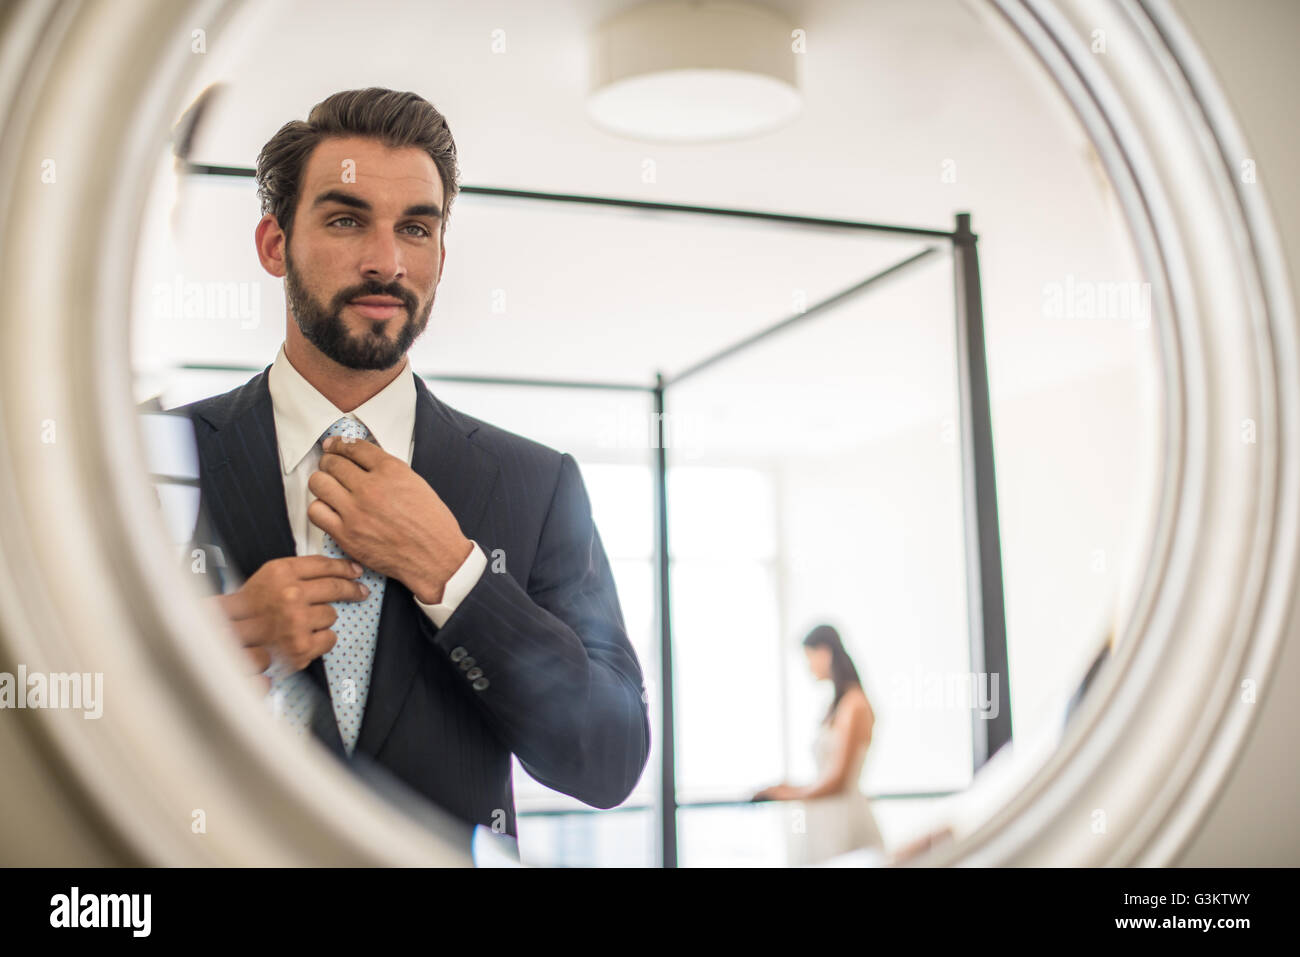 Mirror reflection of young businessman adjusting shirt and tie in hotel room, Dubai, United Arab Emirates - Stock Image